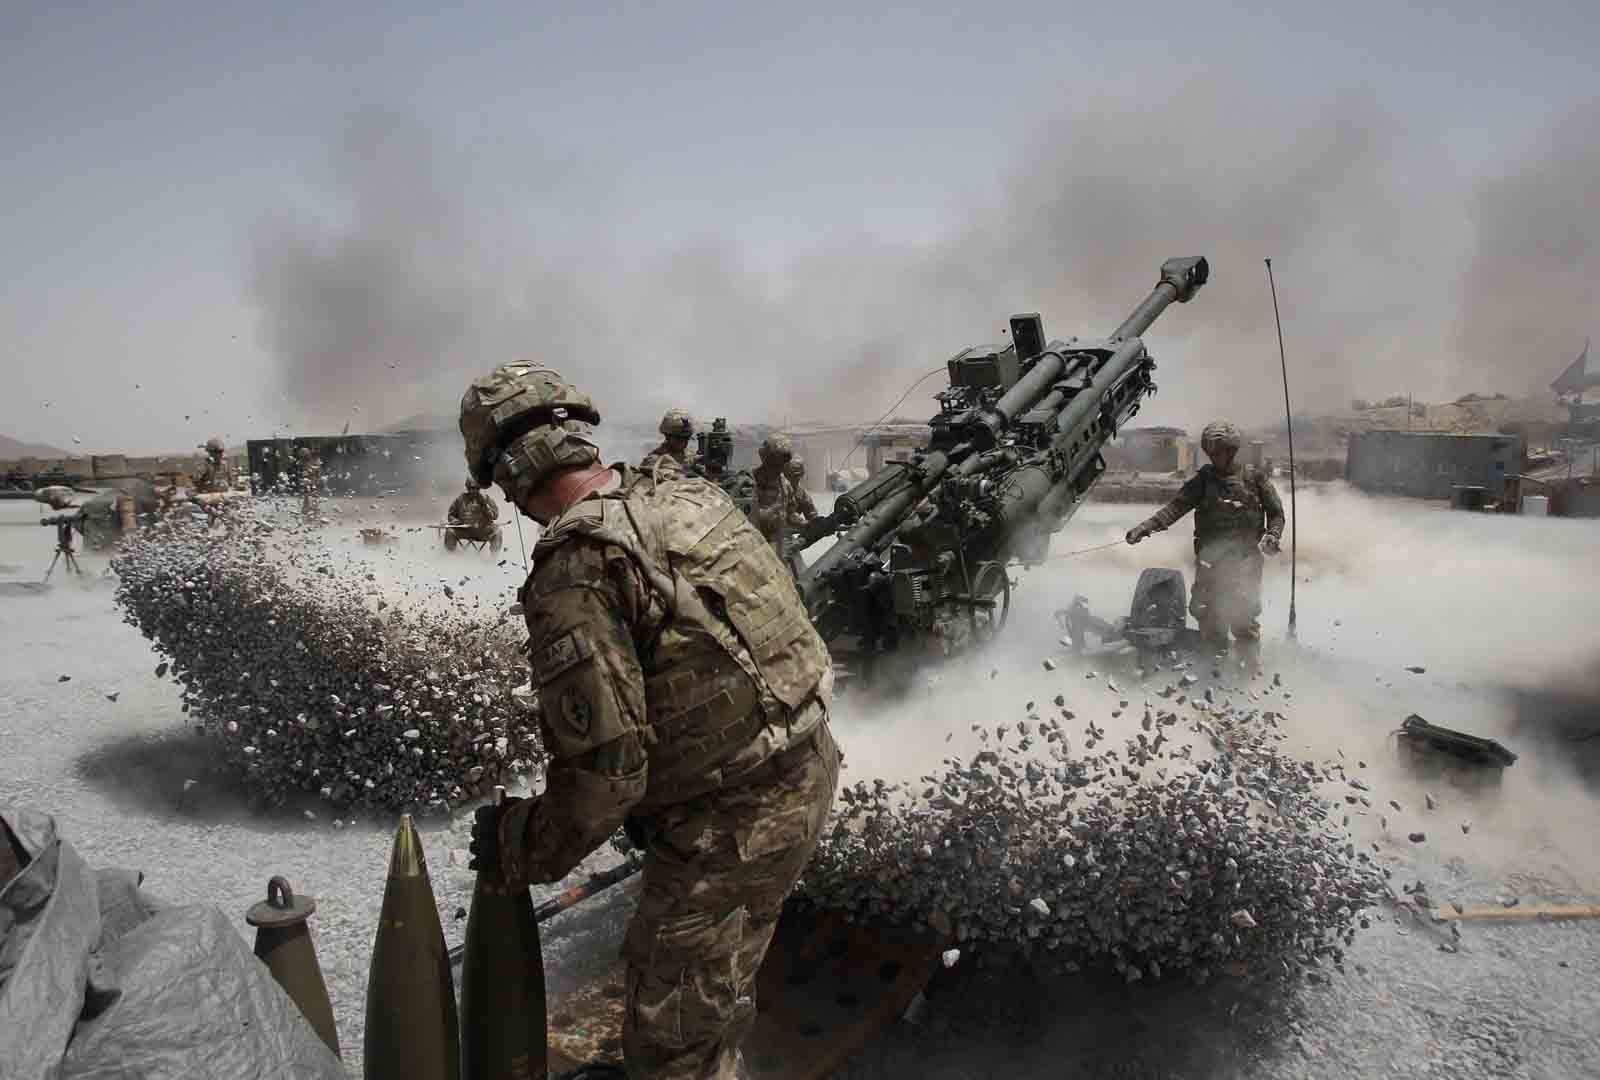 soldiers War military artillery HD Wallpaper